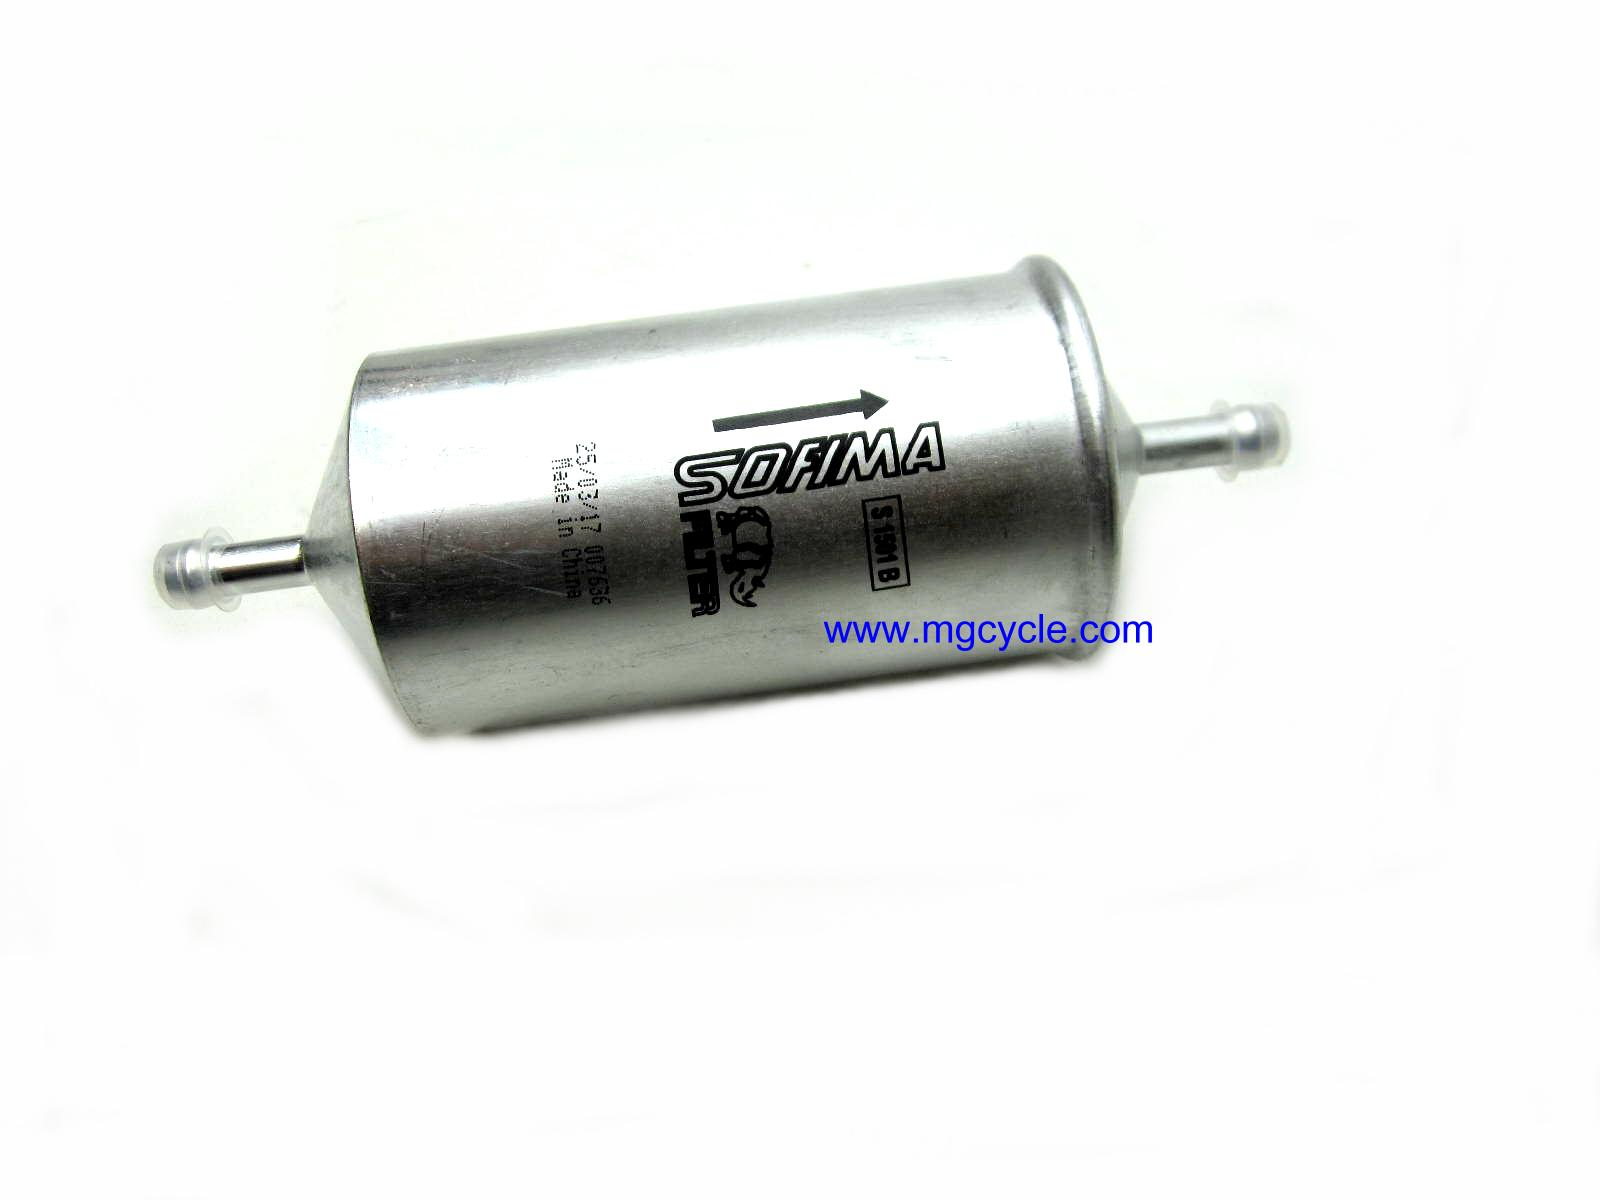 Fuel filter thru '02 1100 Sport Centauro V11 Sport LeMans Quota